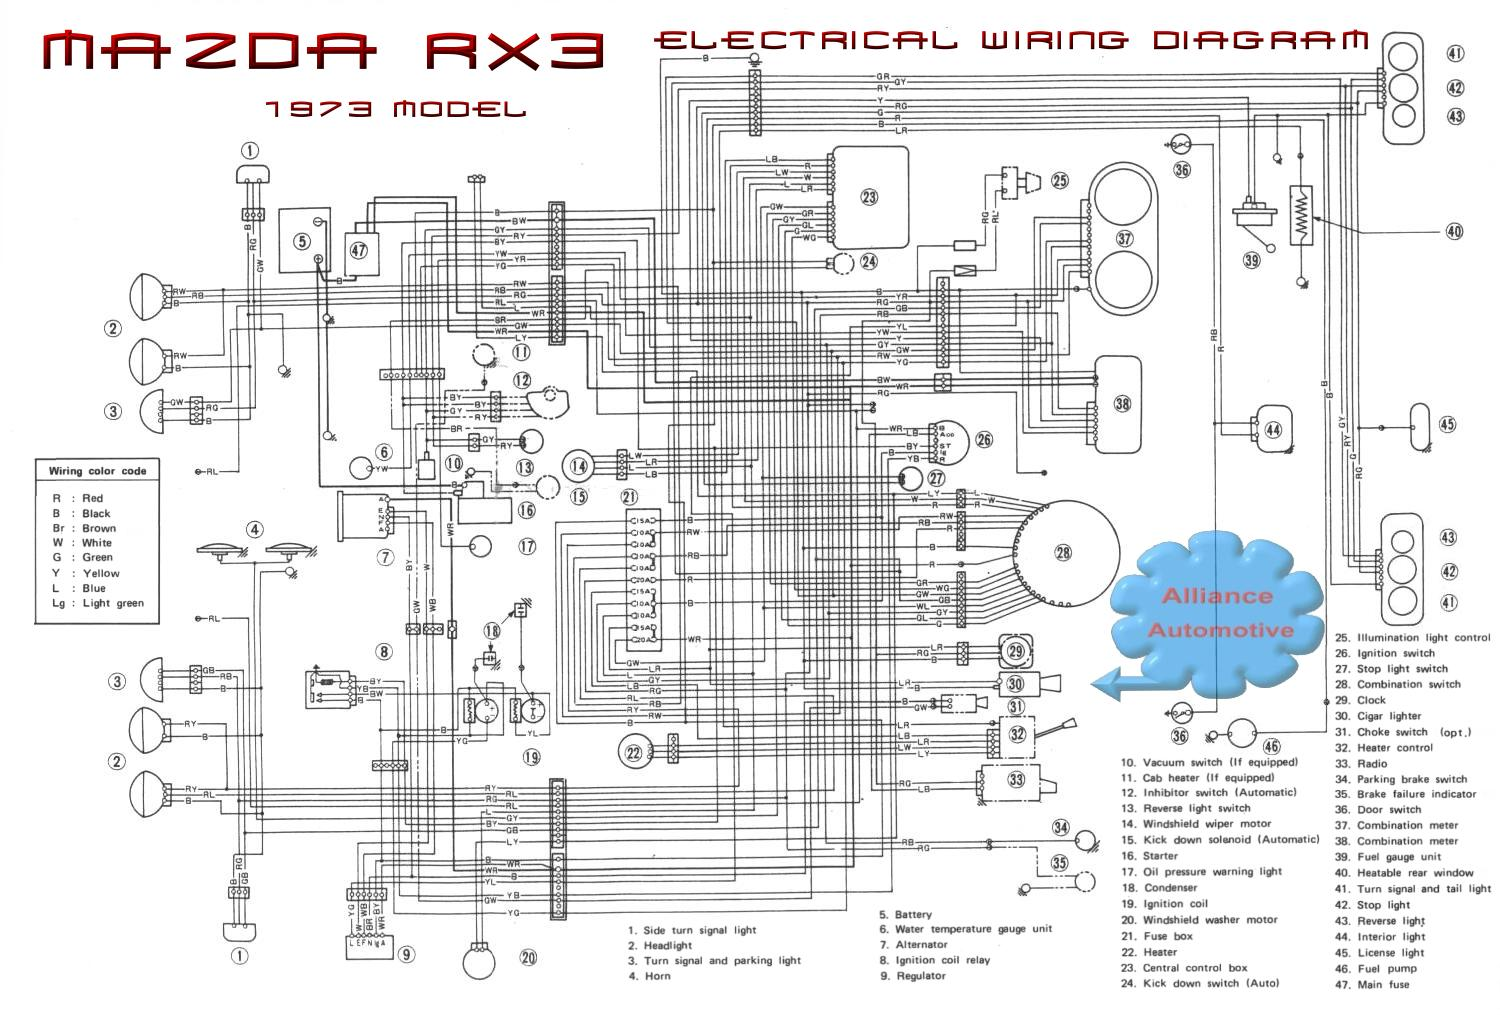 Strange Golf Cart Wiring Harness For Horn Free Download Wiring Diagram Wiring Cloud Lukepaidewilluminateatxorg